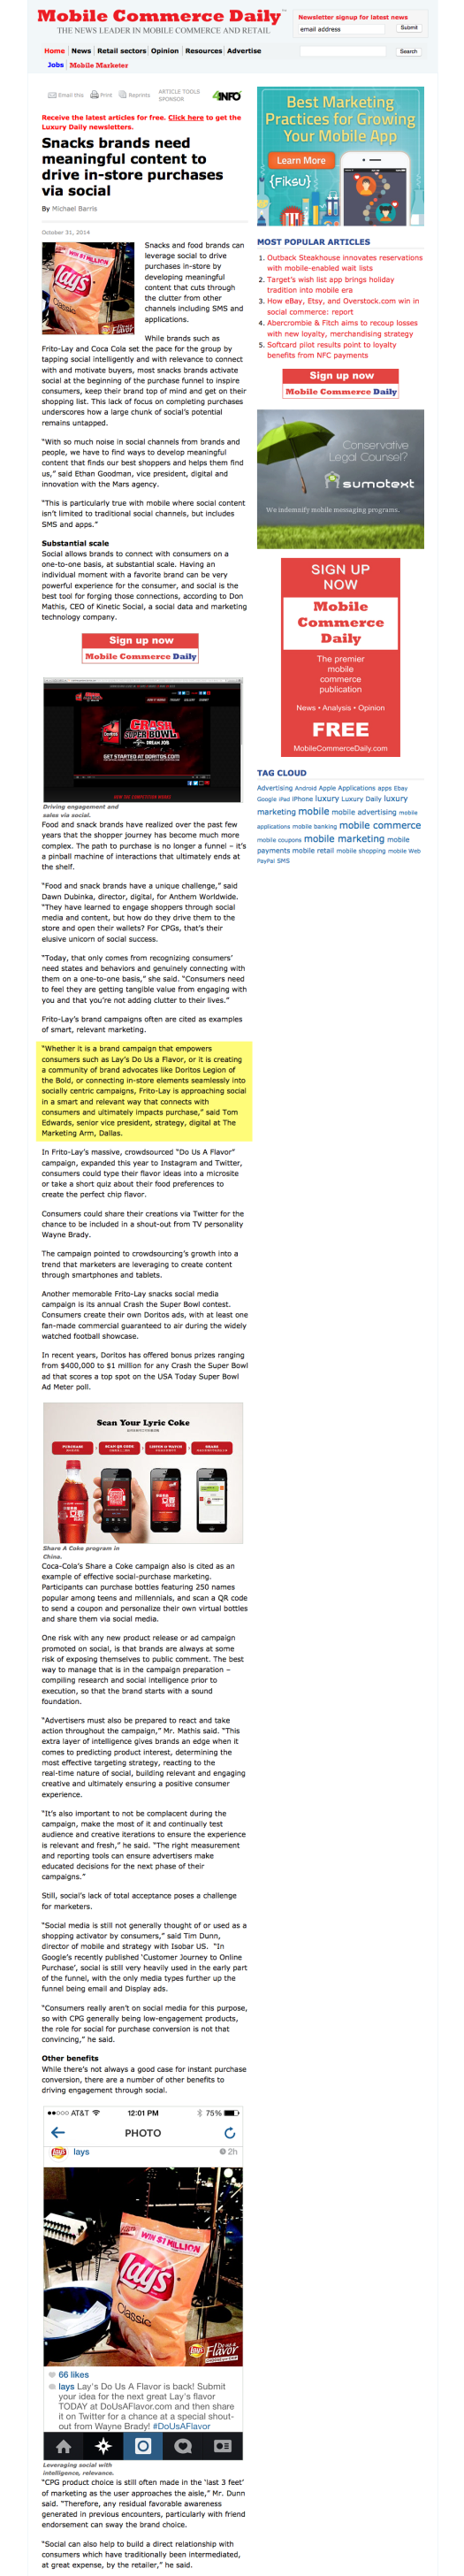 Snacks brands need meaningful content to drive in-store purchases via social - Mobile Marketer - Advertising 2014-11-09 21-34-09